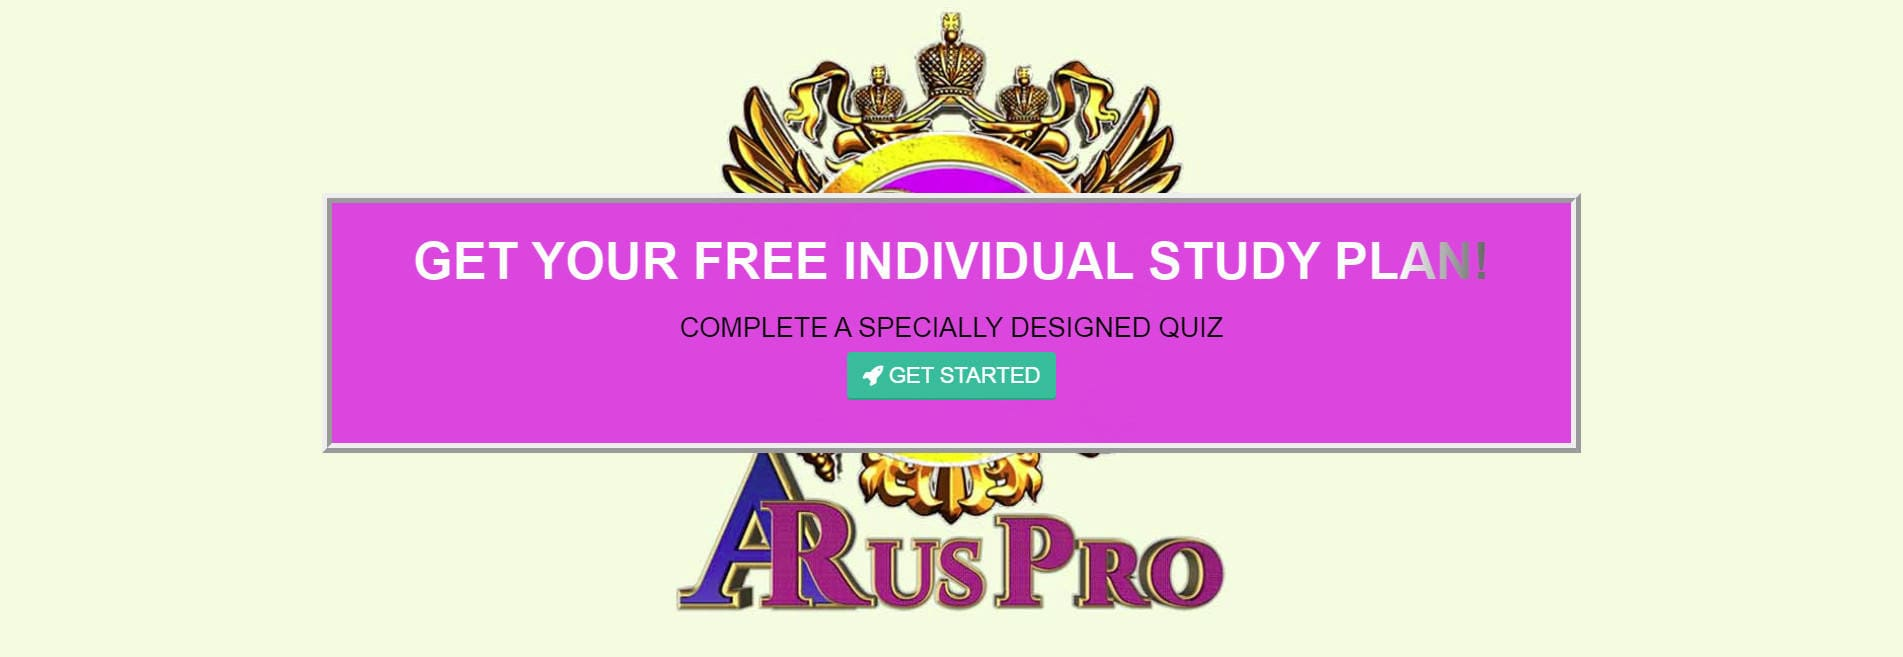 Get your free individual study plan